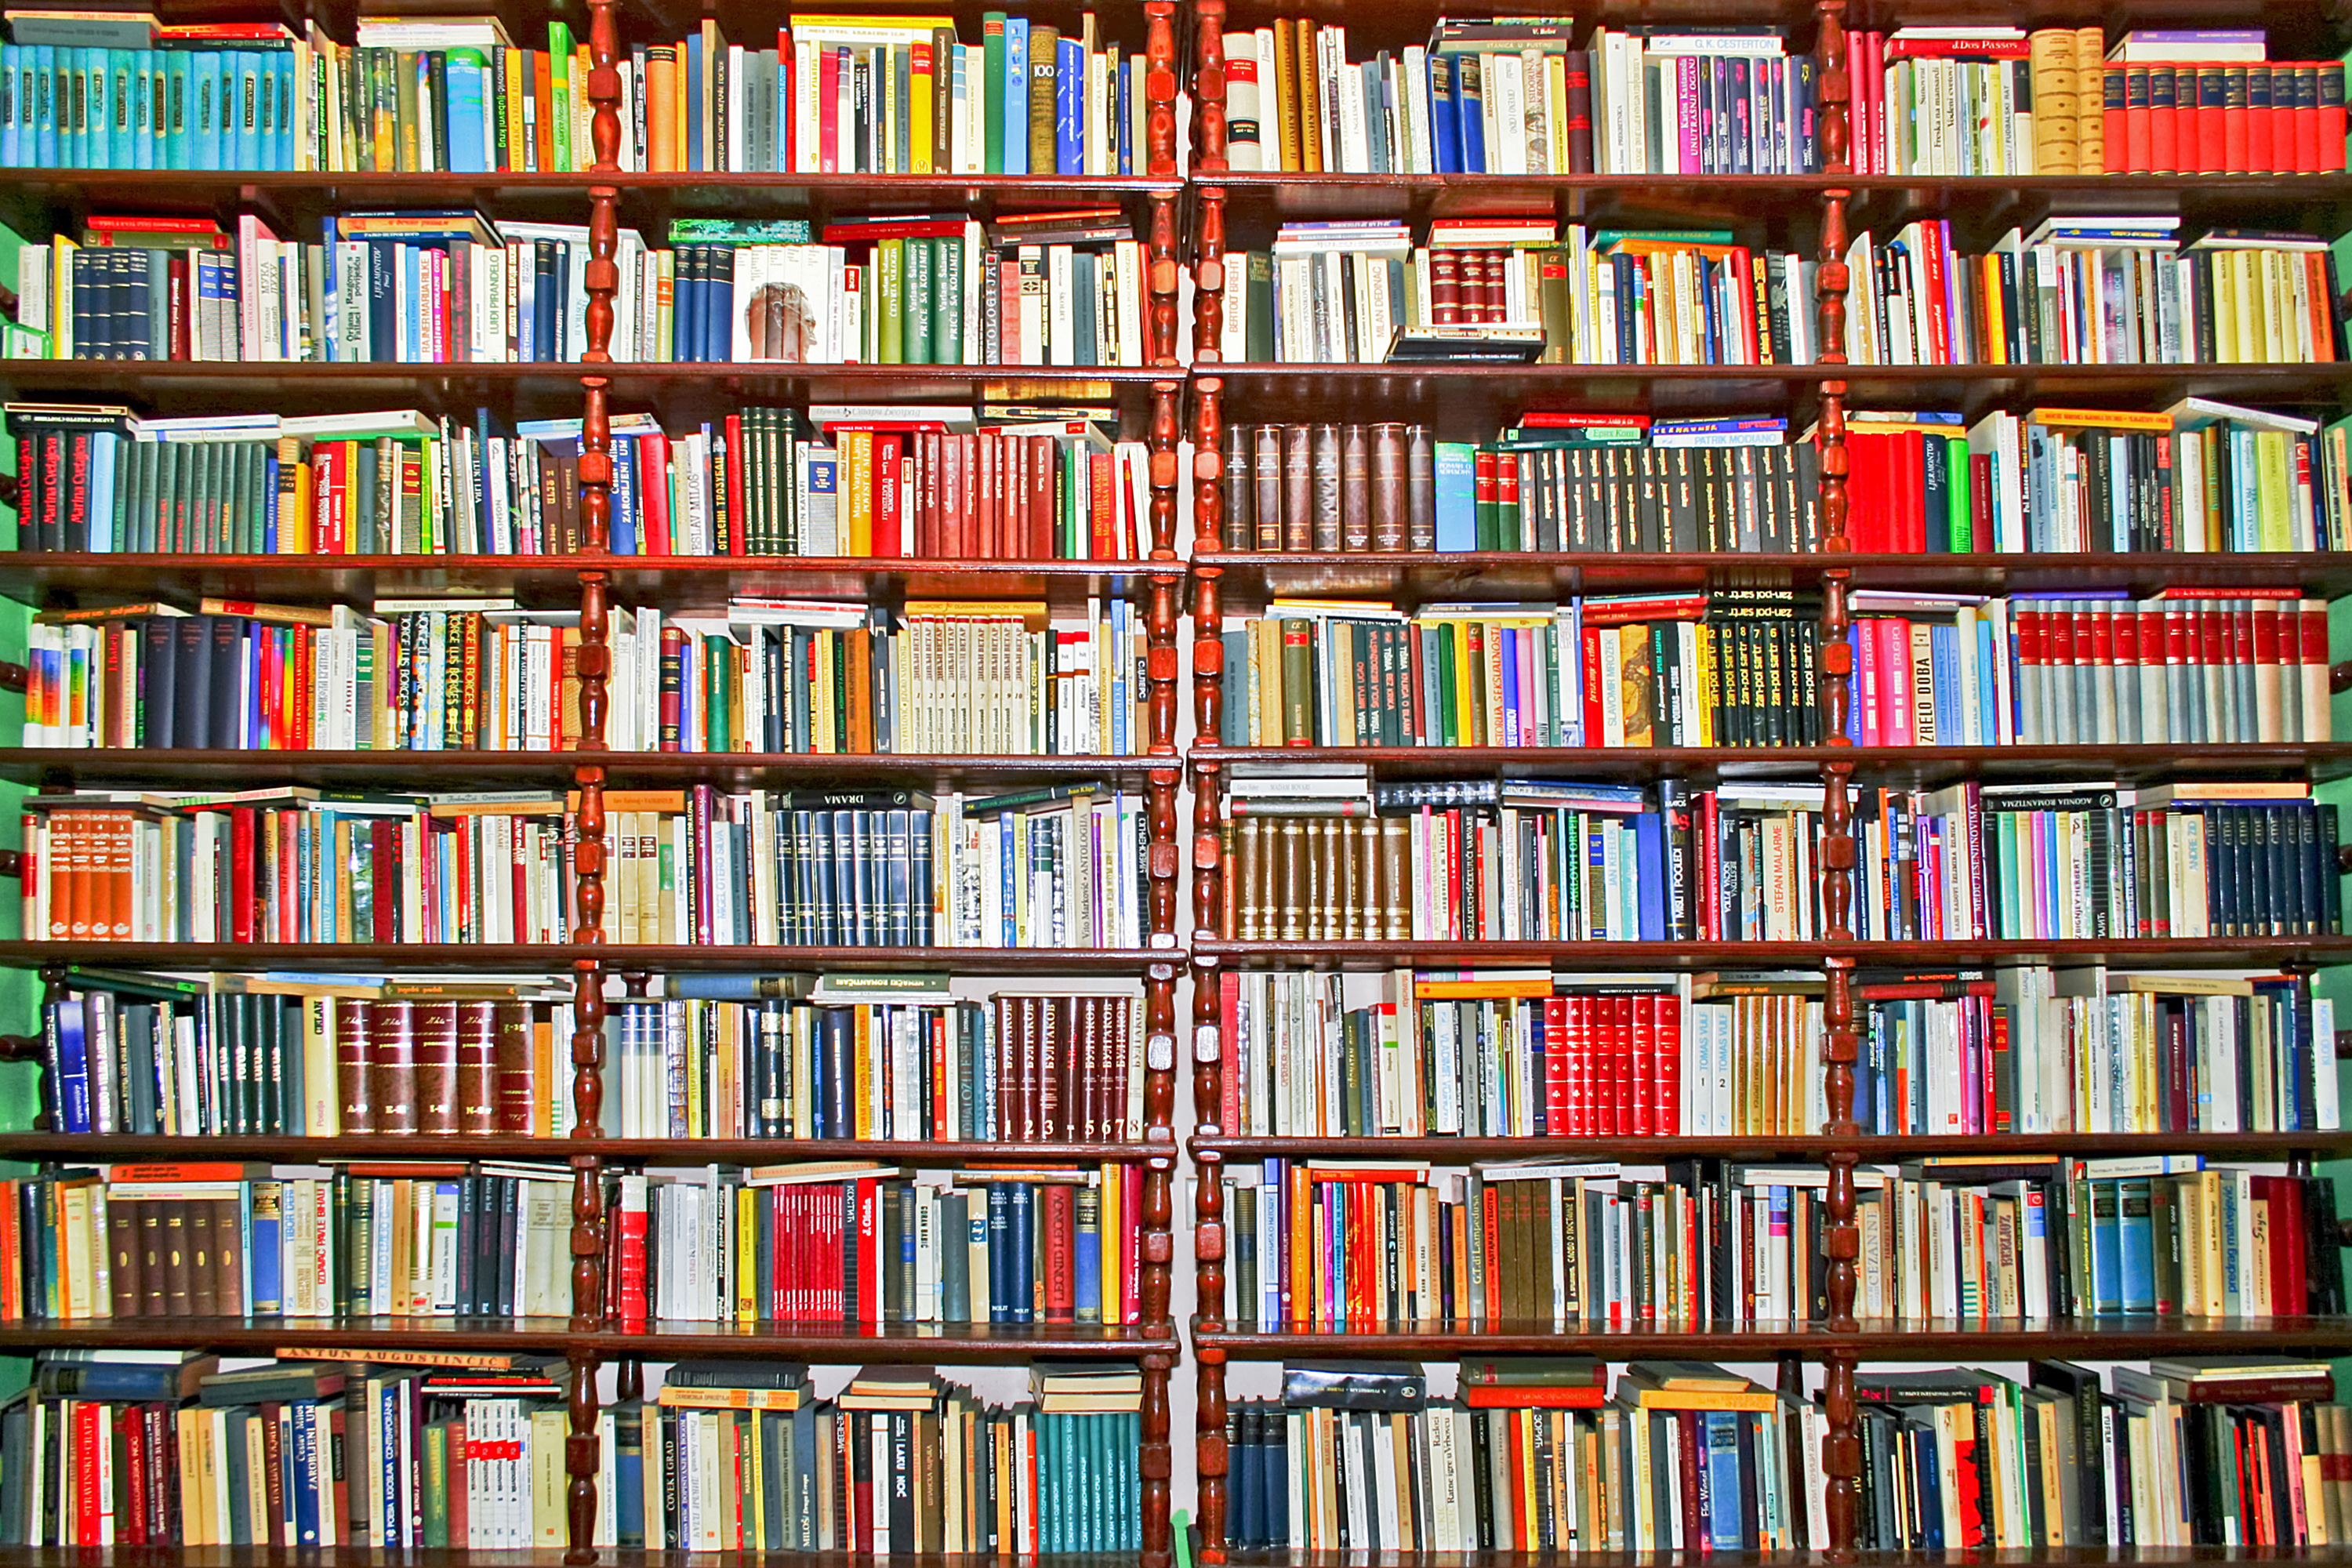 Whole big wall covered with lot of books